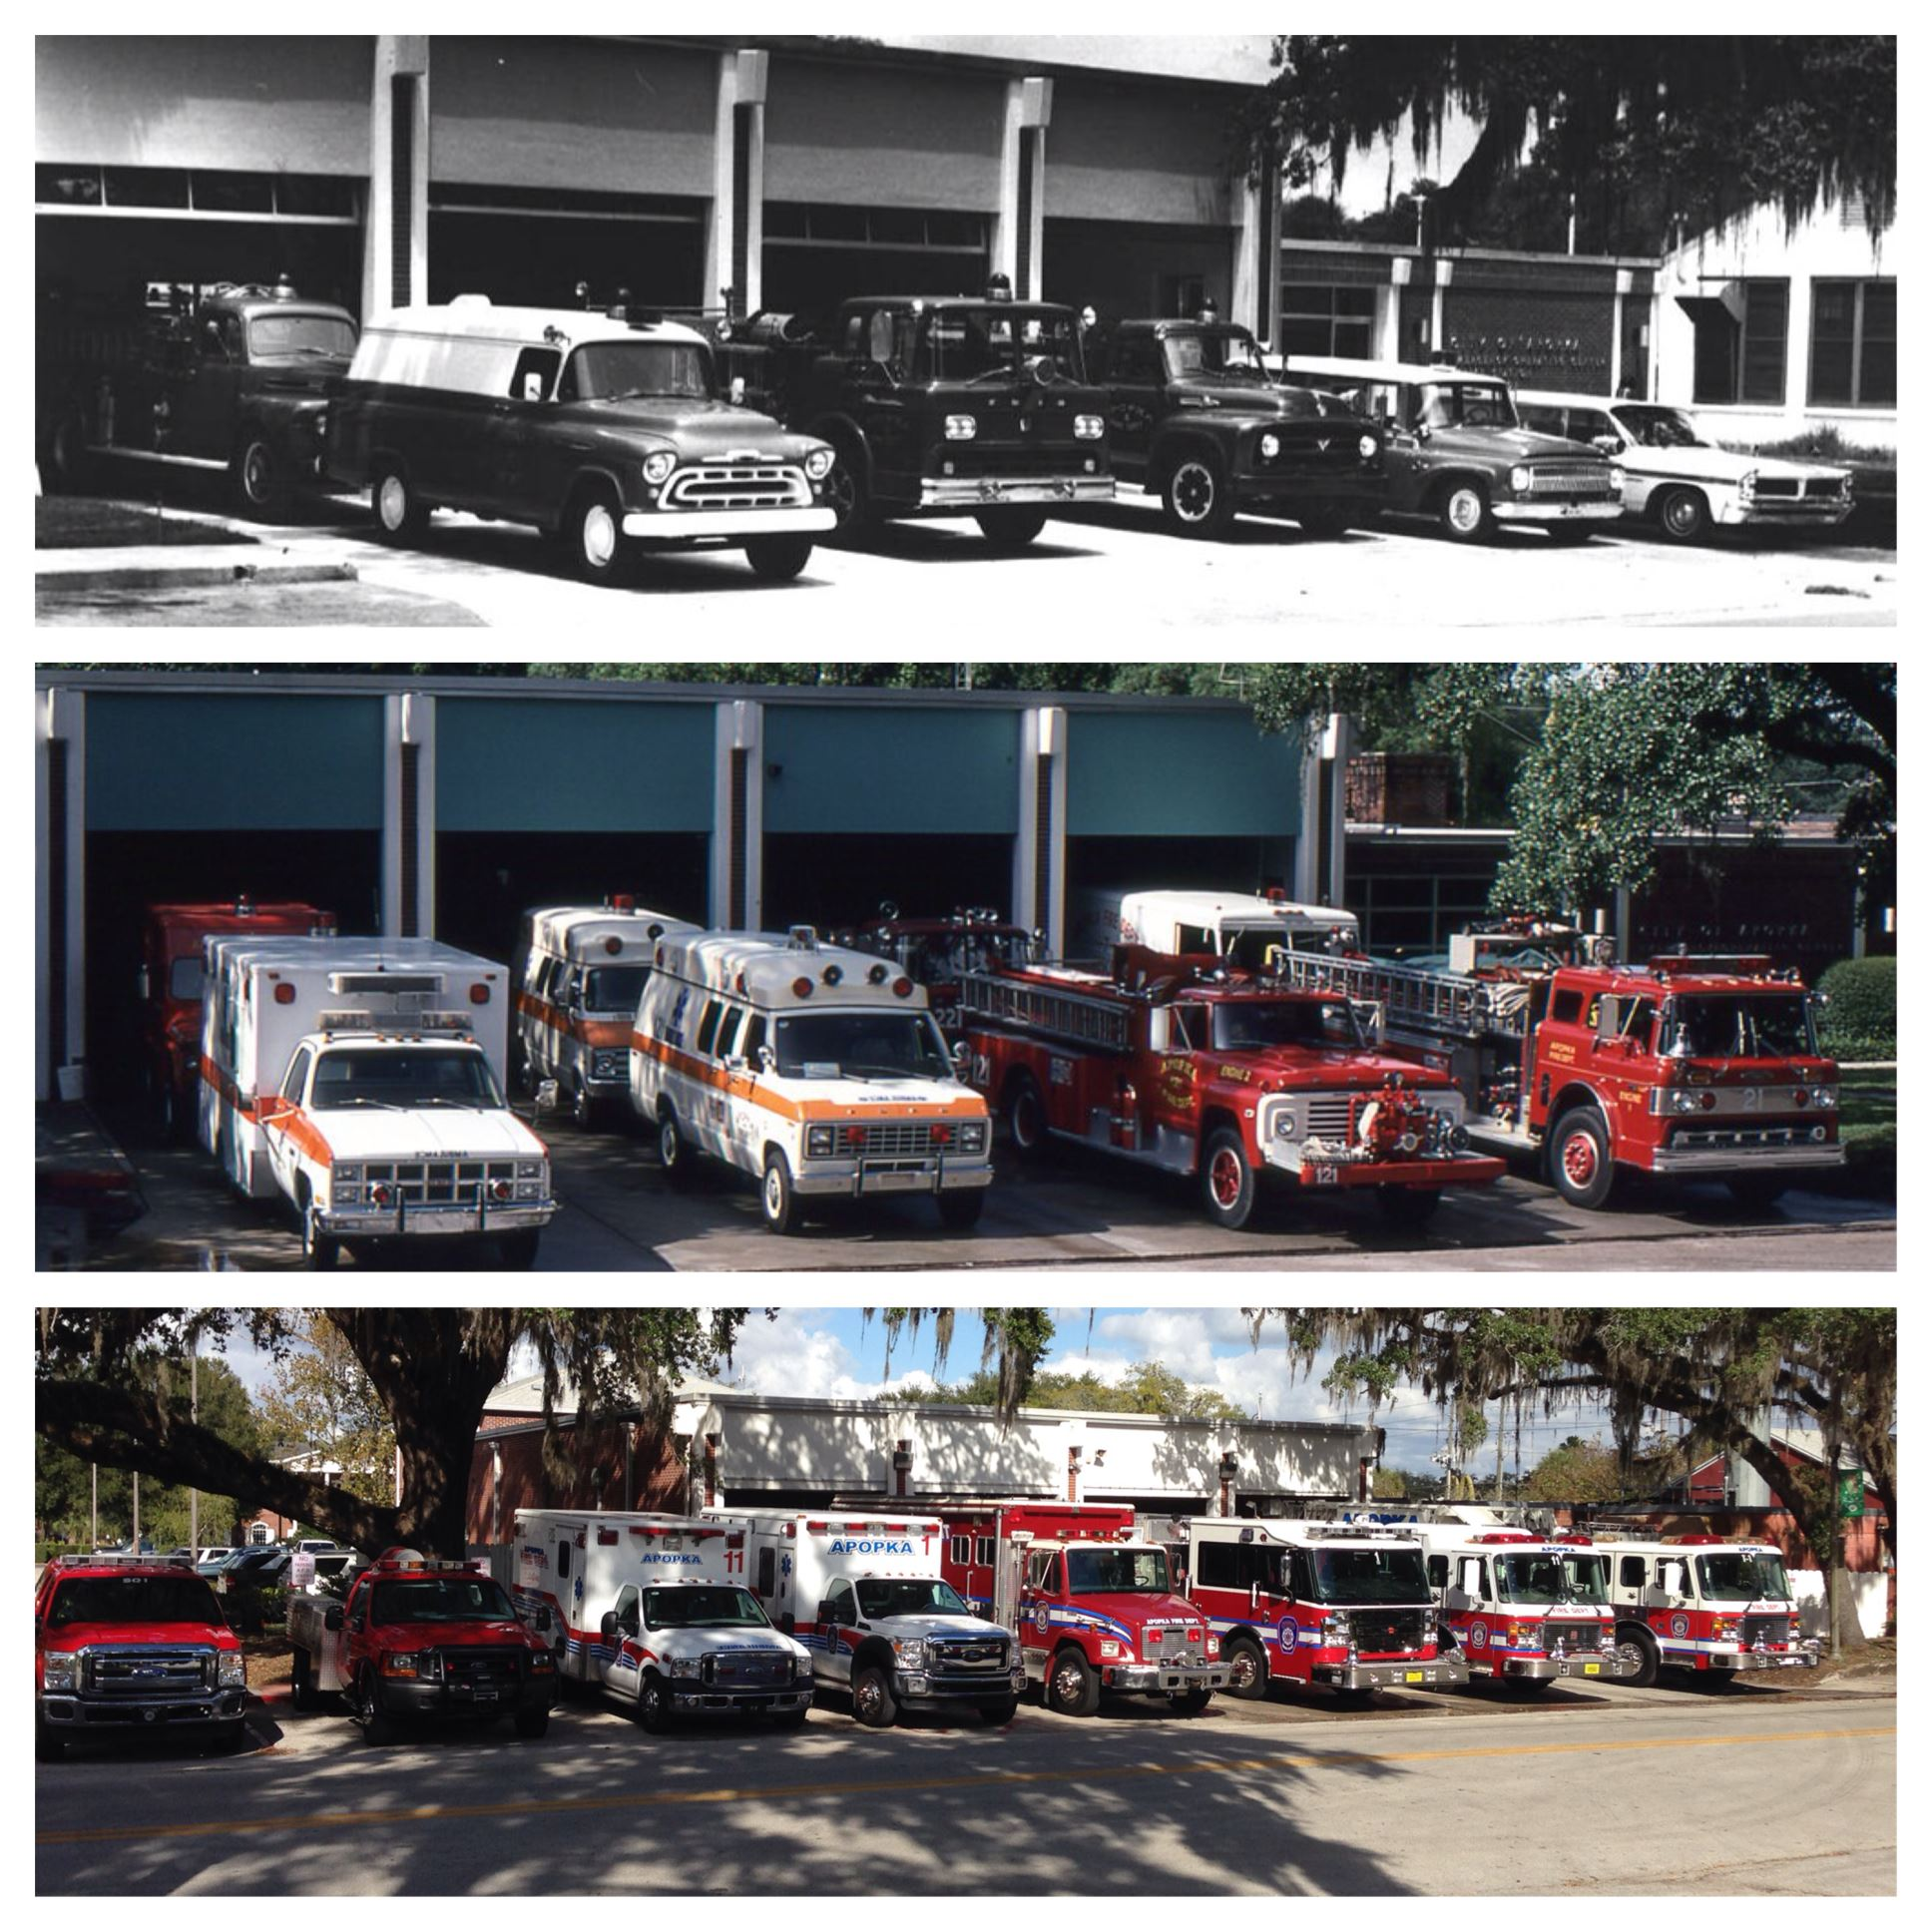 Collage of different fire trucks through the ages.